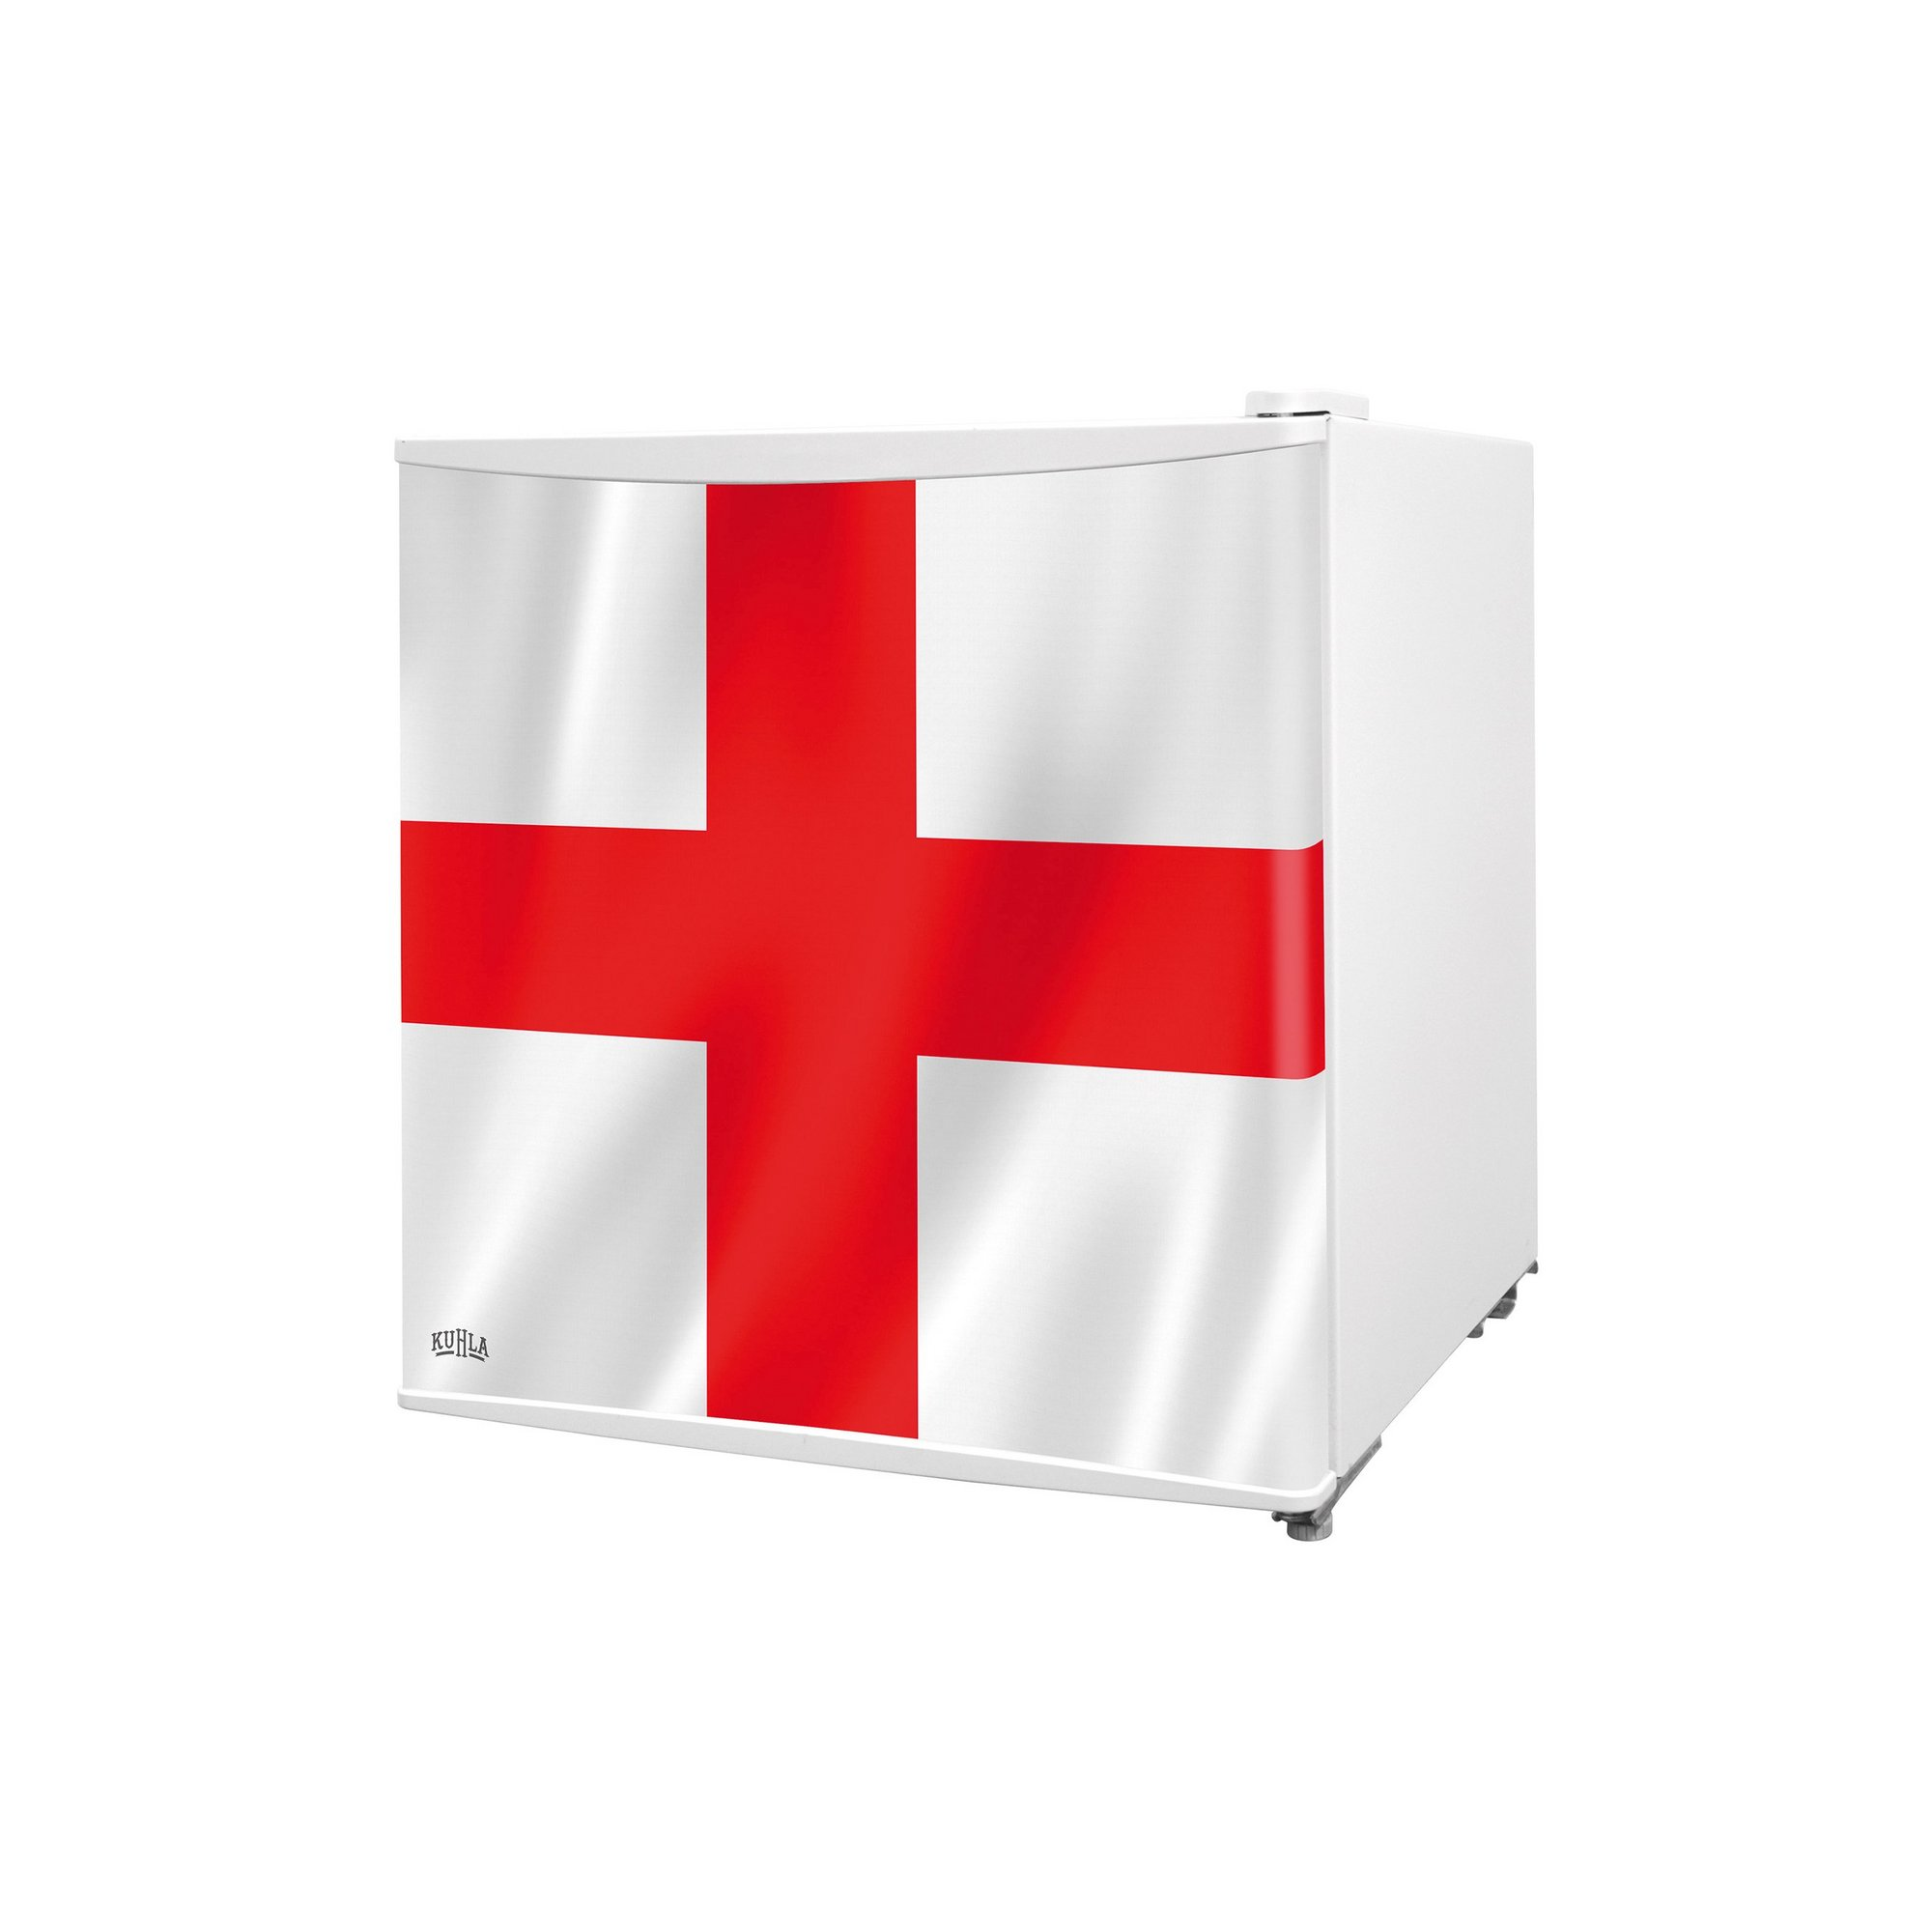 Image of Kuhla Table Top St. Georges Flag Fridge